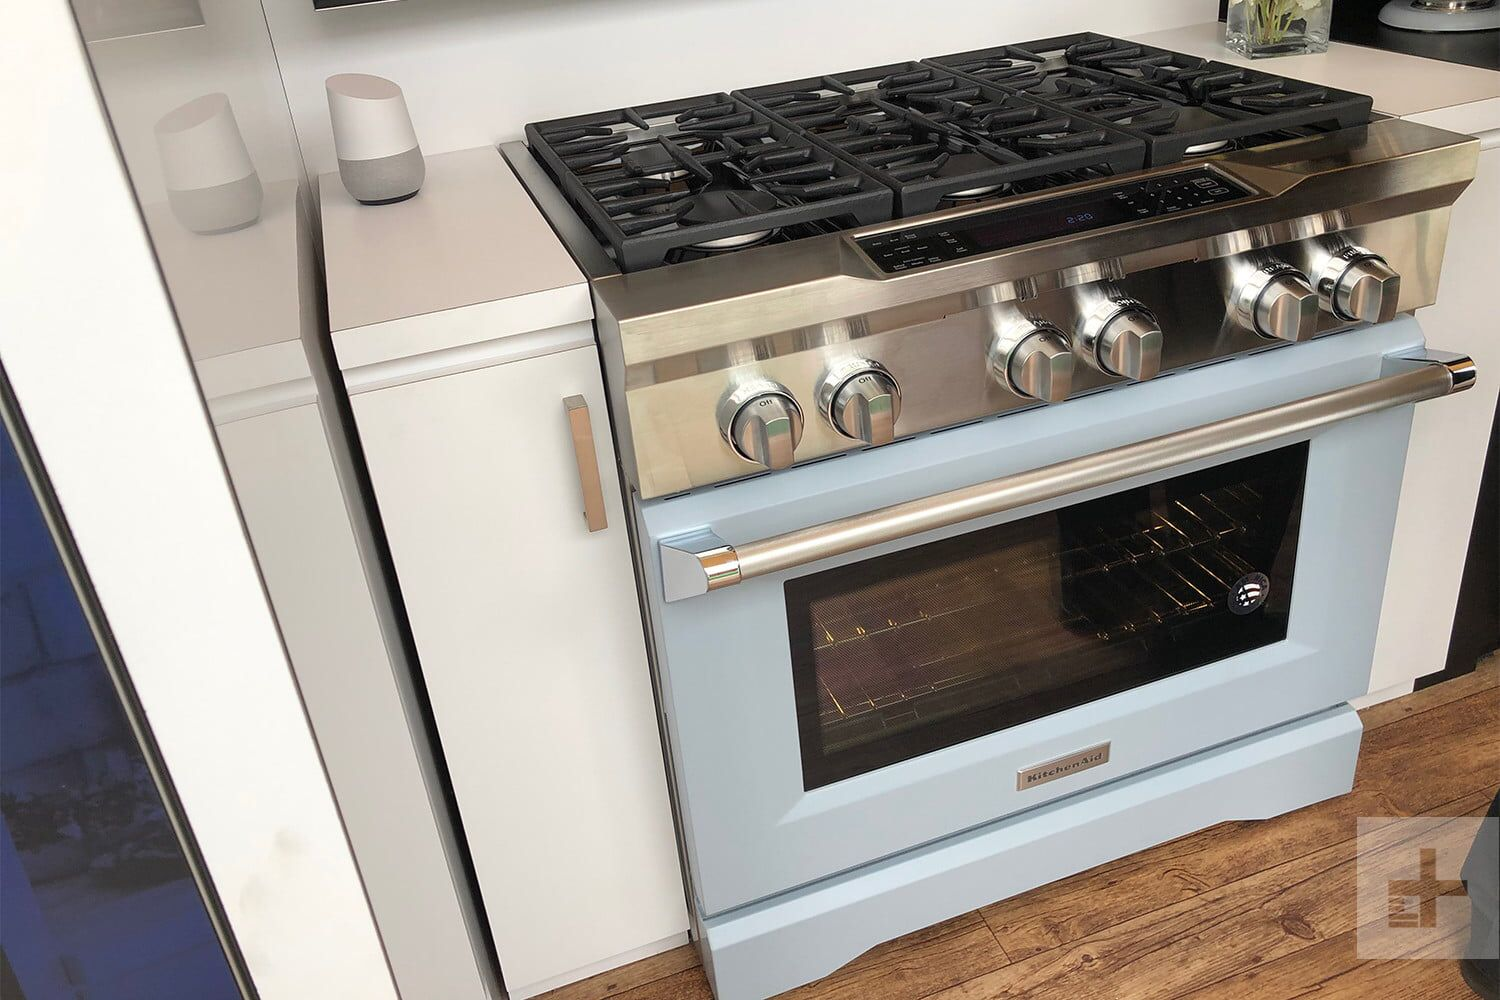 Kitchen Aid Range In Powder Blue In Line With The Very Popular